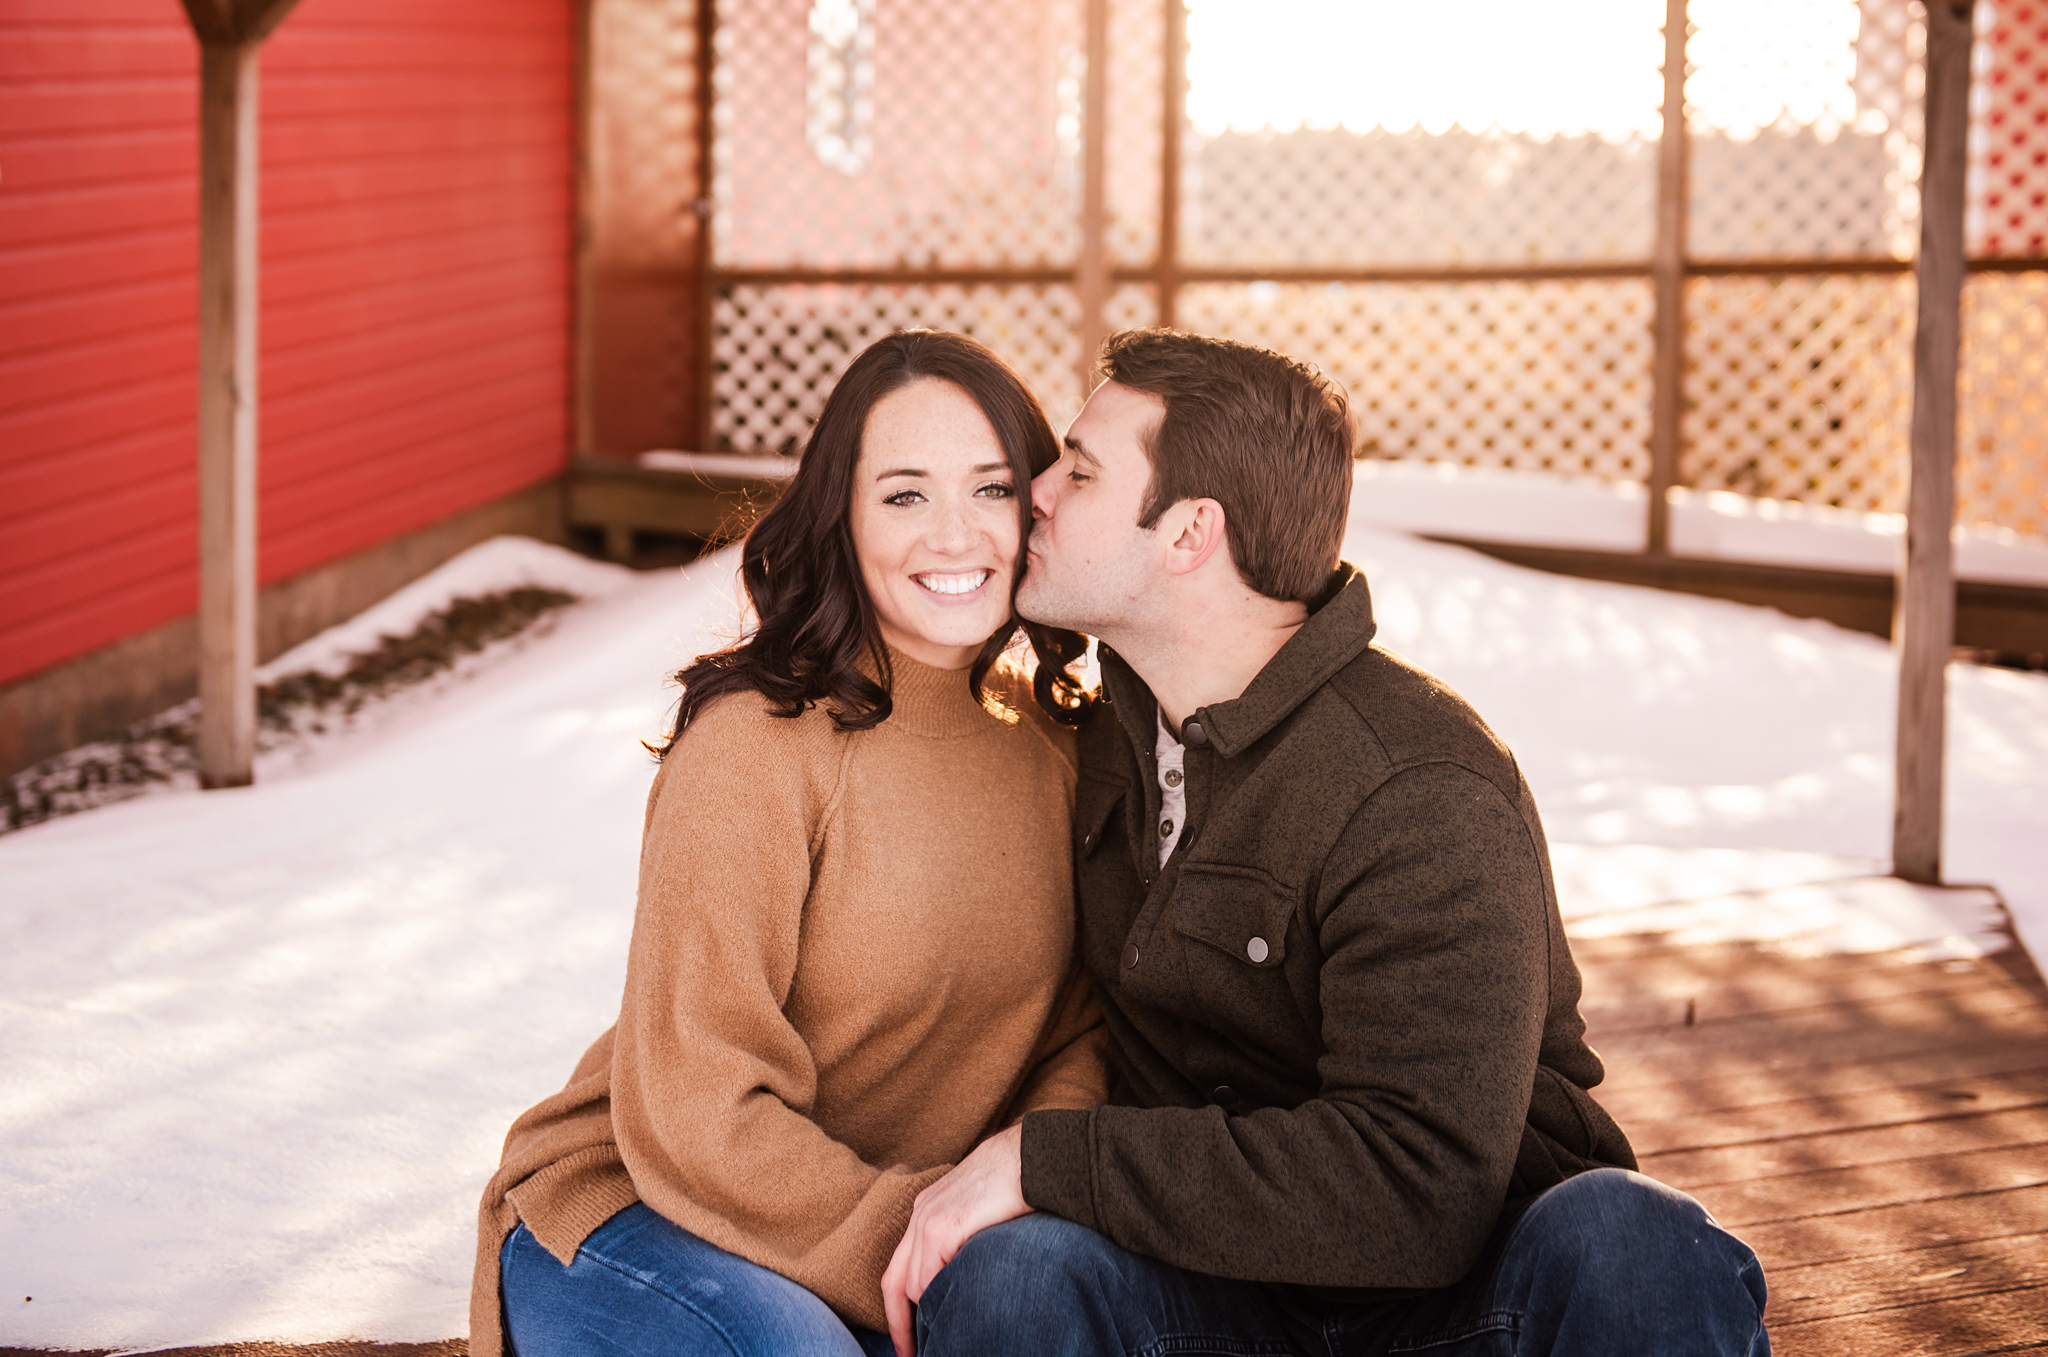 Fallbrook_Central_NY_Engagement_Session_JILL_STUDIO_Rochester_NY_Photographer_DSC_4791.jpg